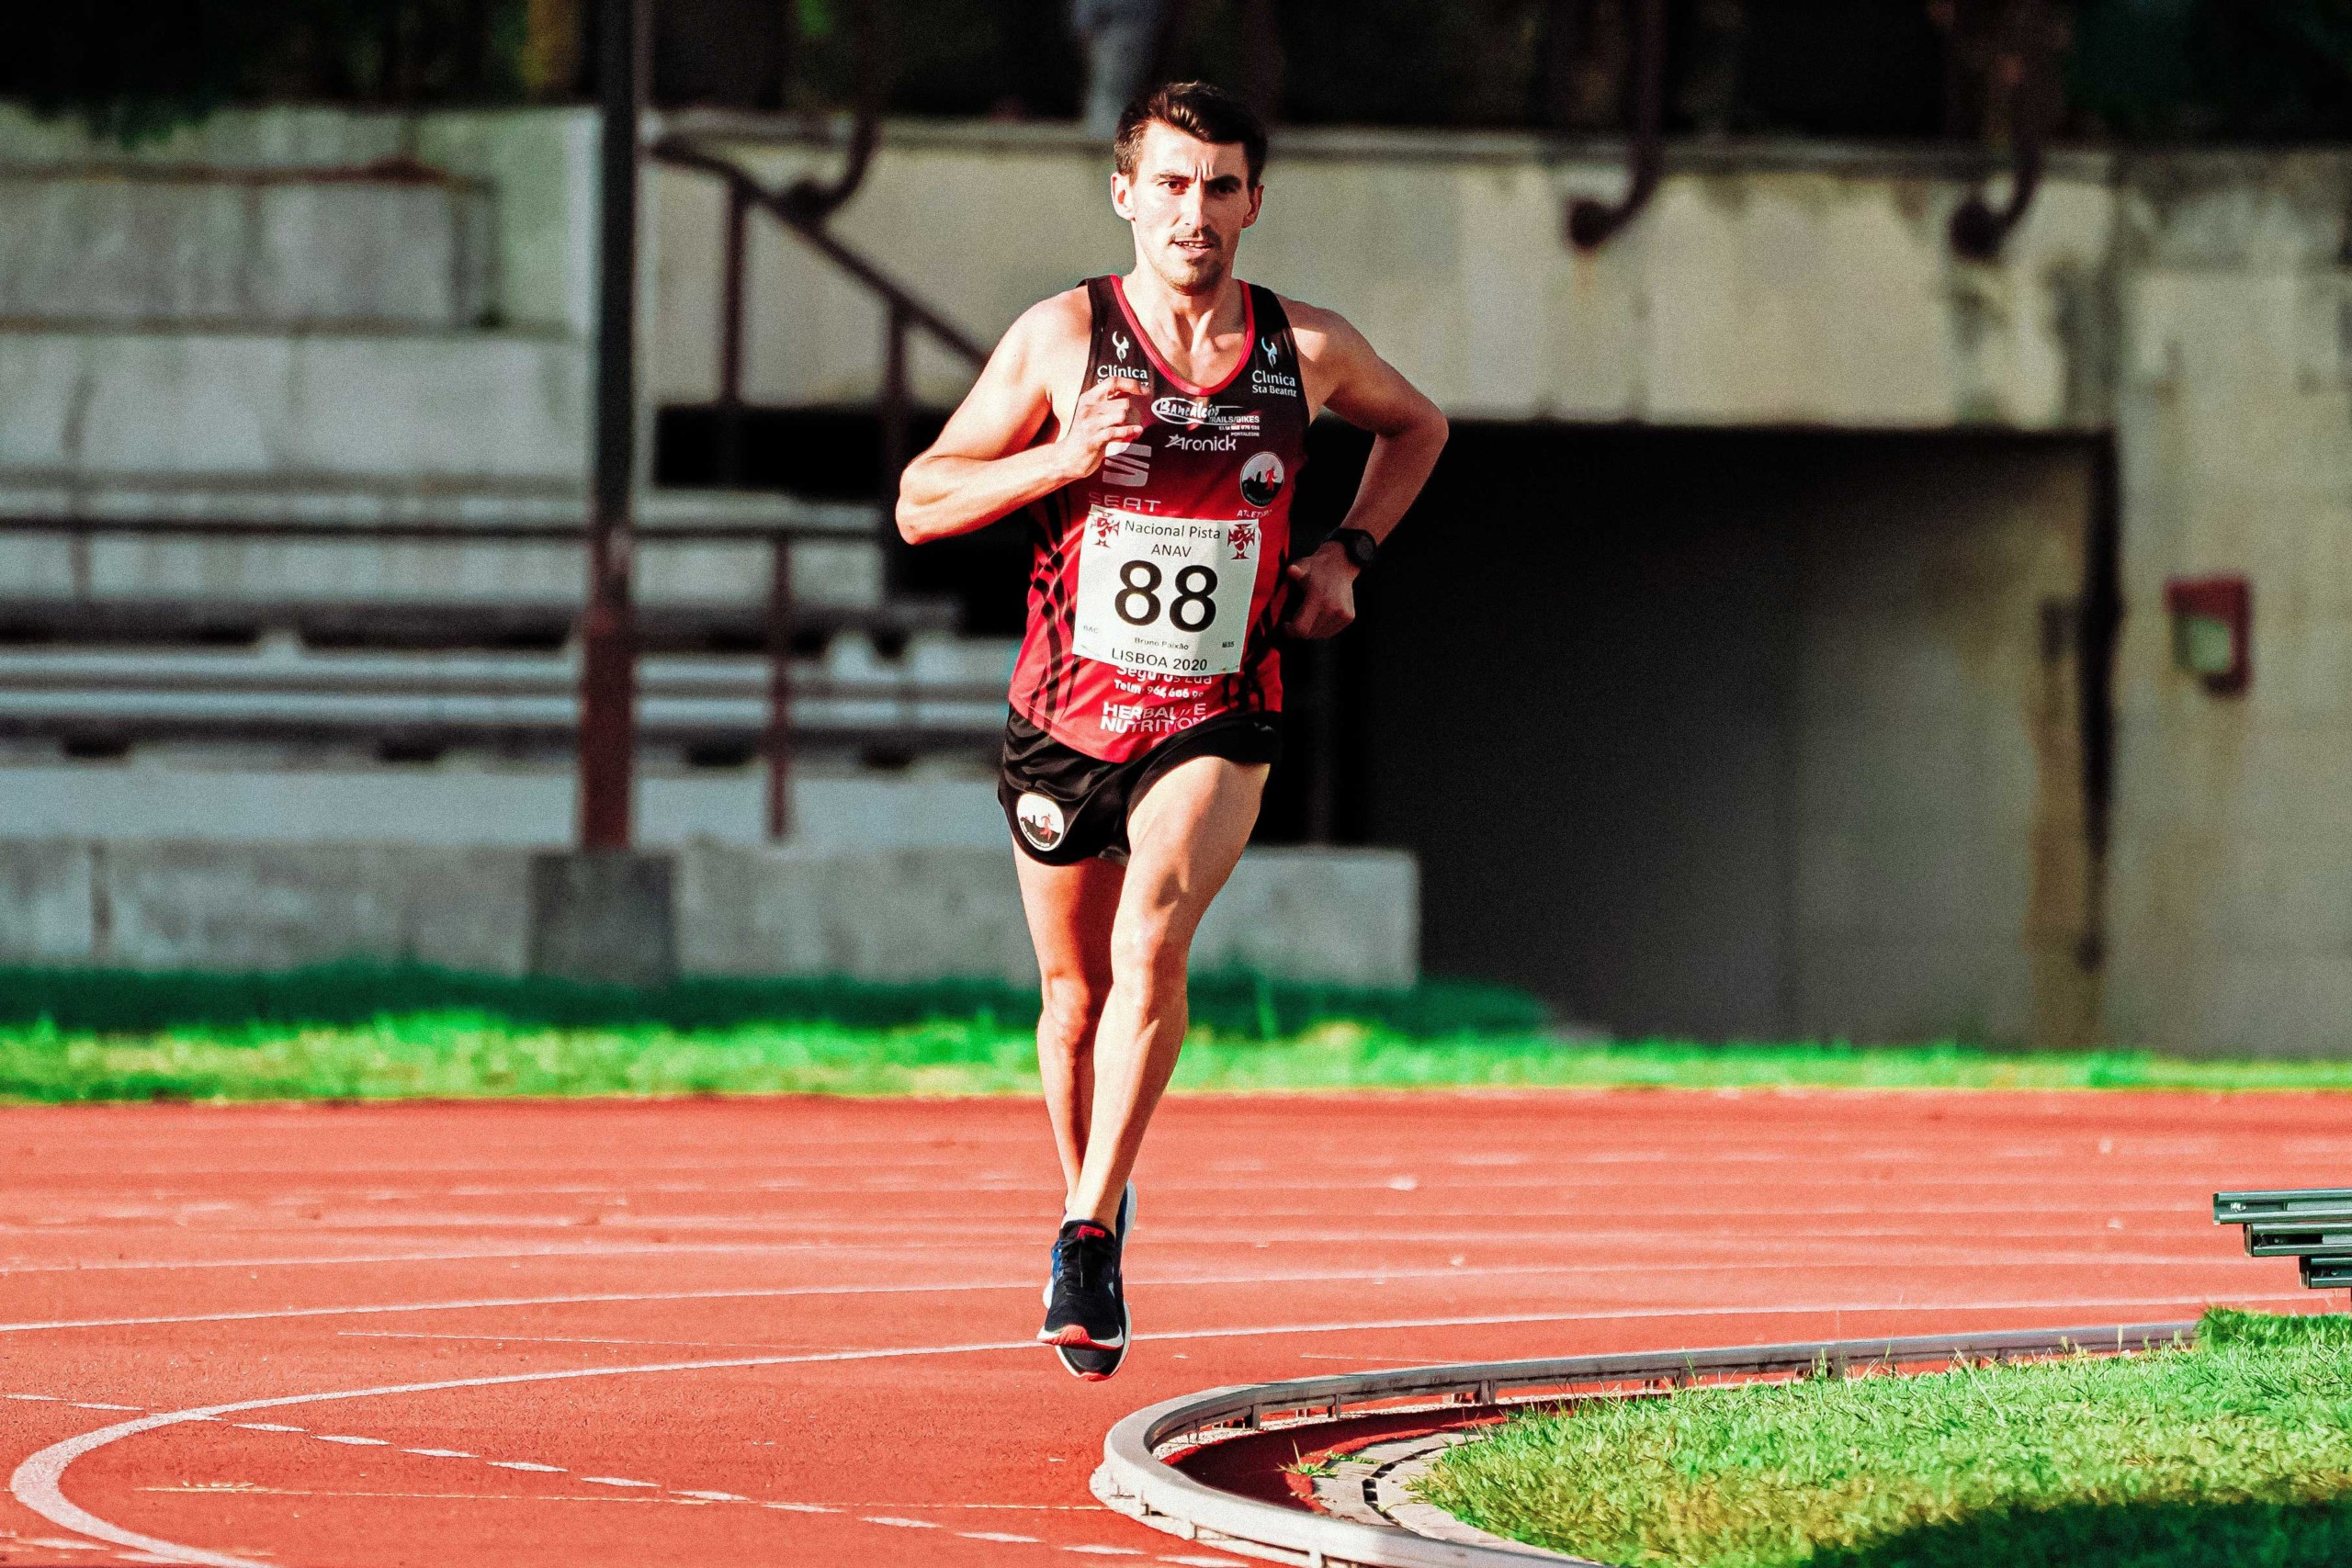 Man running on an outdoor running track